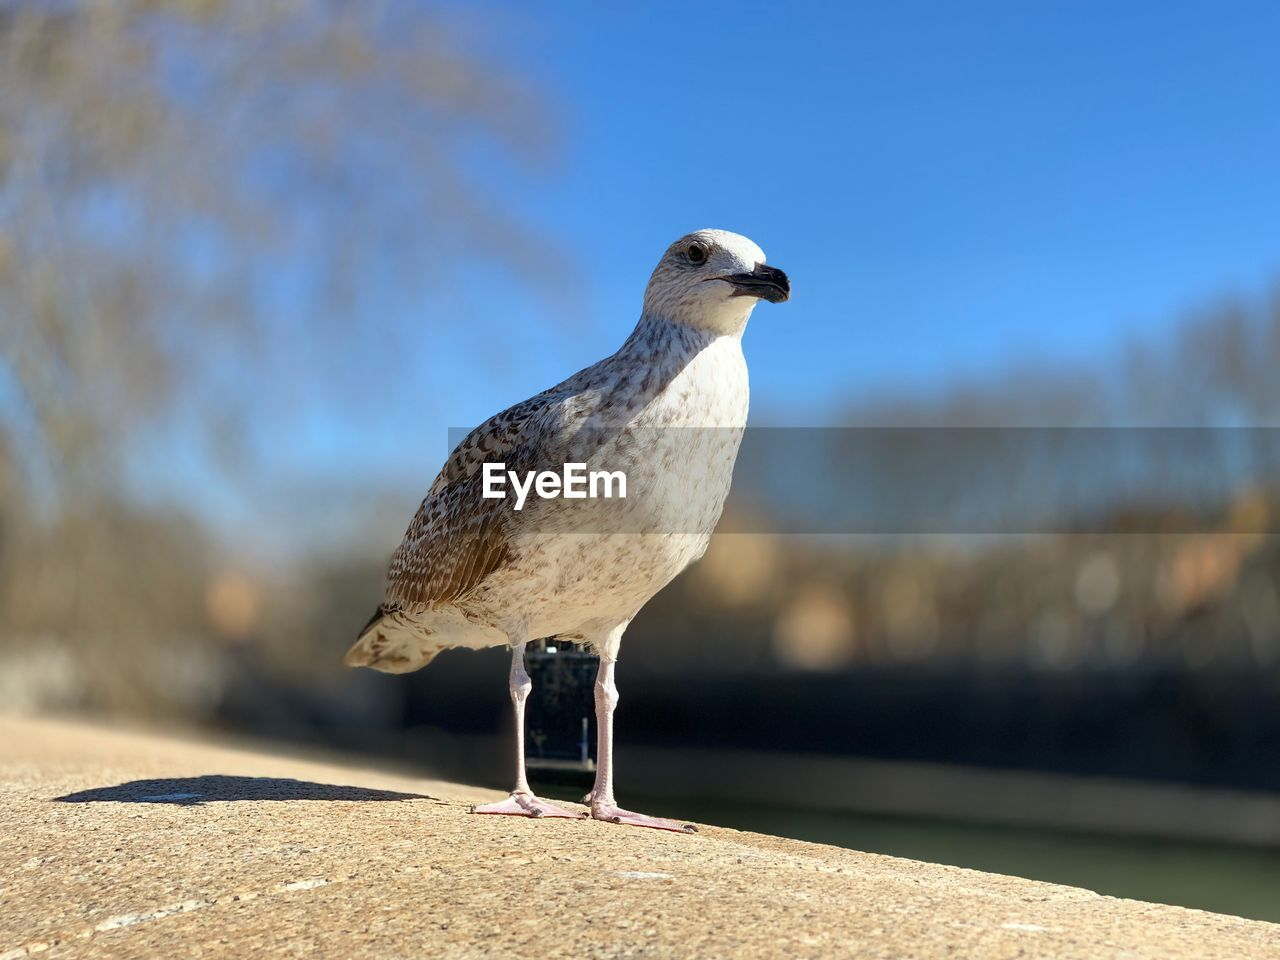 bird, animal themes, one animal, animals in the wild, animal, vertebrate, animal wildlife, focus on foreground, sunlight, perching, nature, day, seagull, close-up, no people, wall, retaining wall, outdoors, sunny, full length